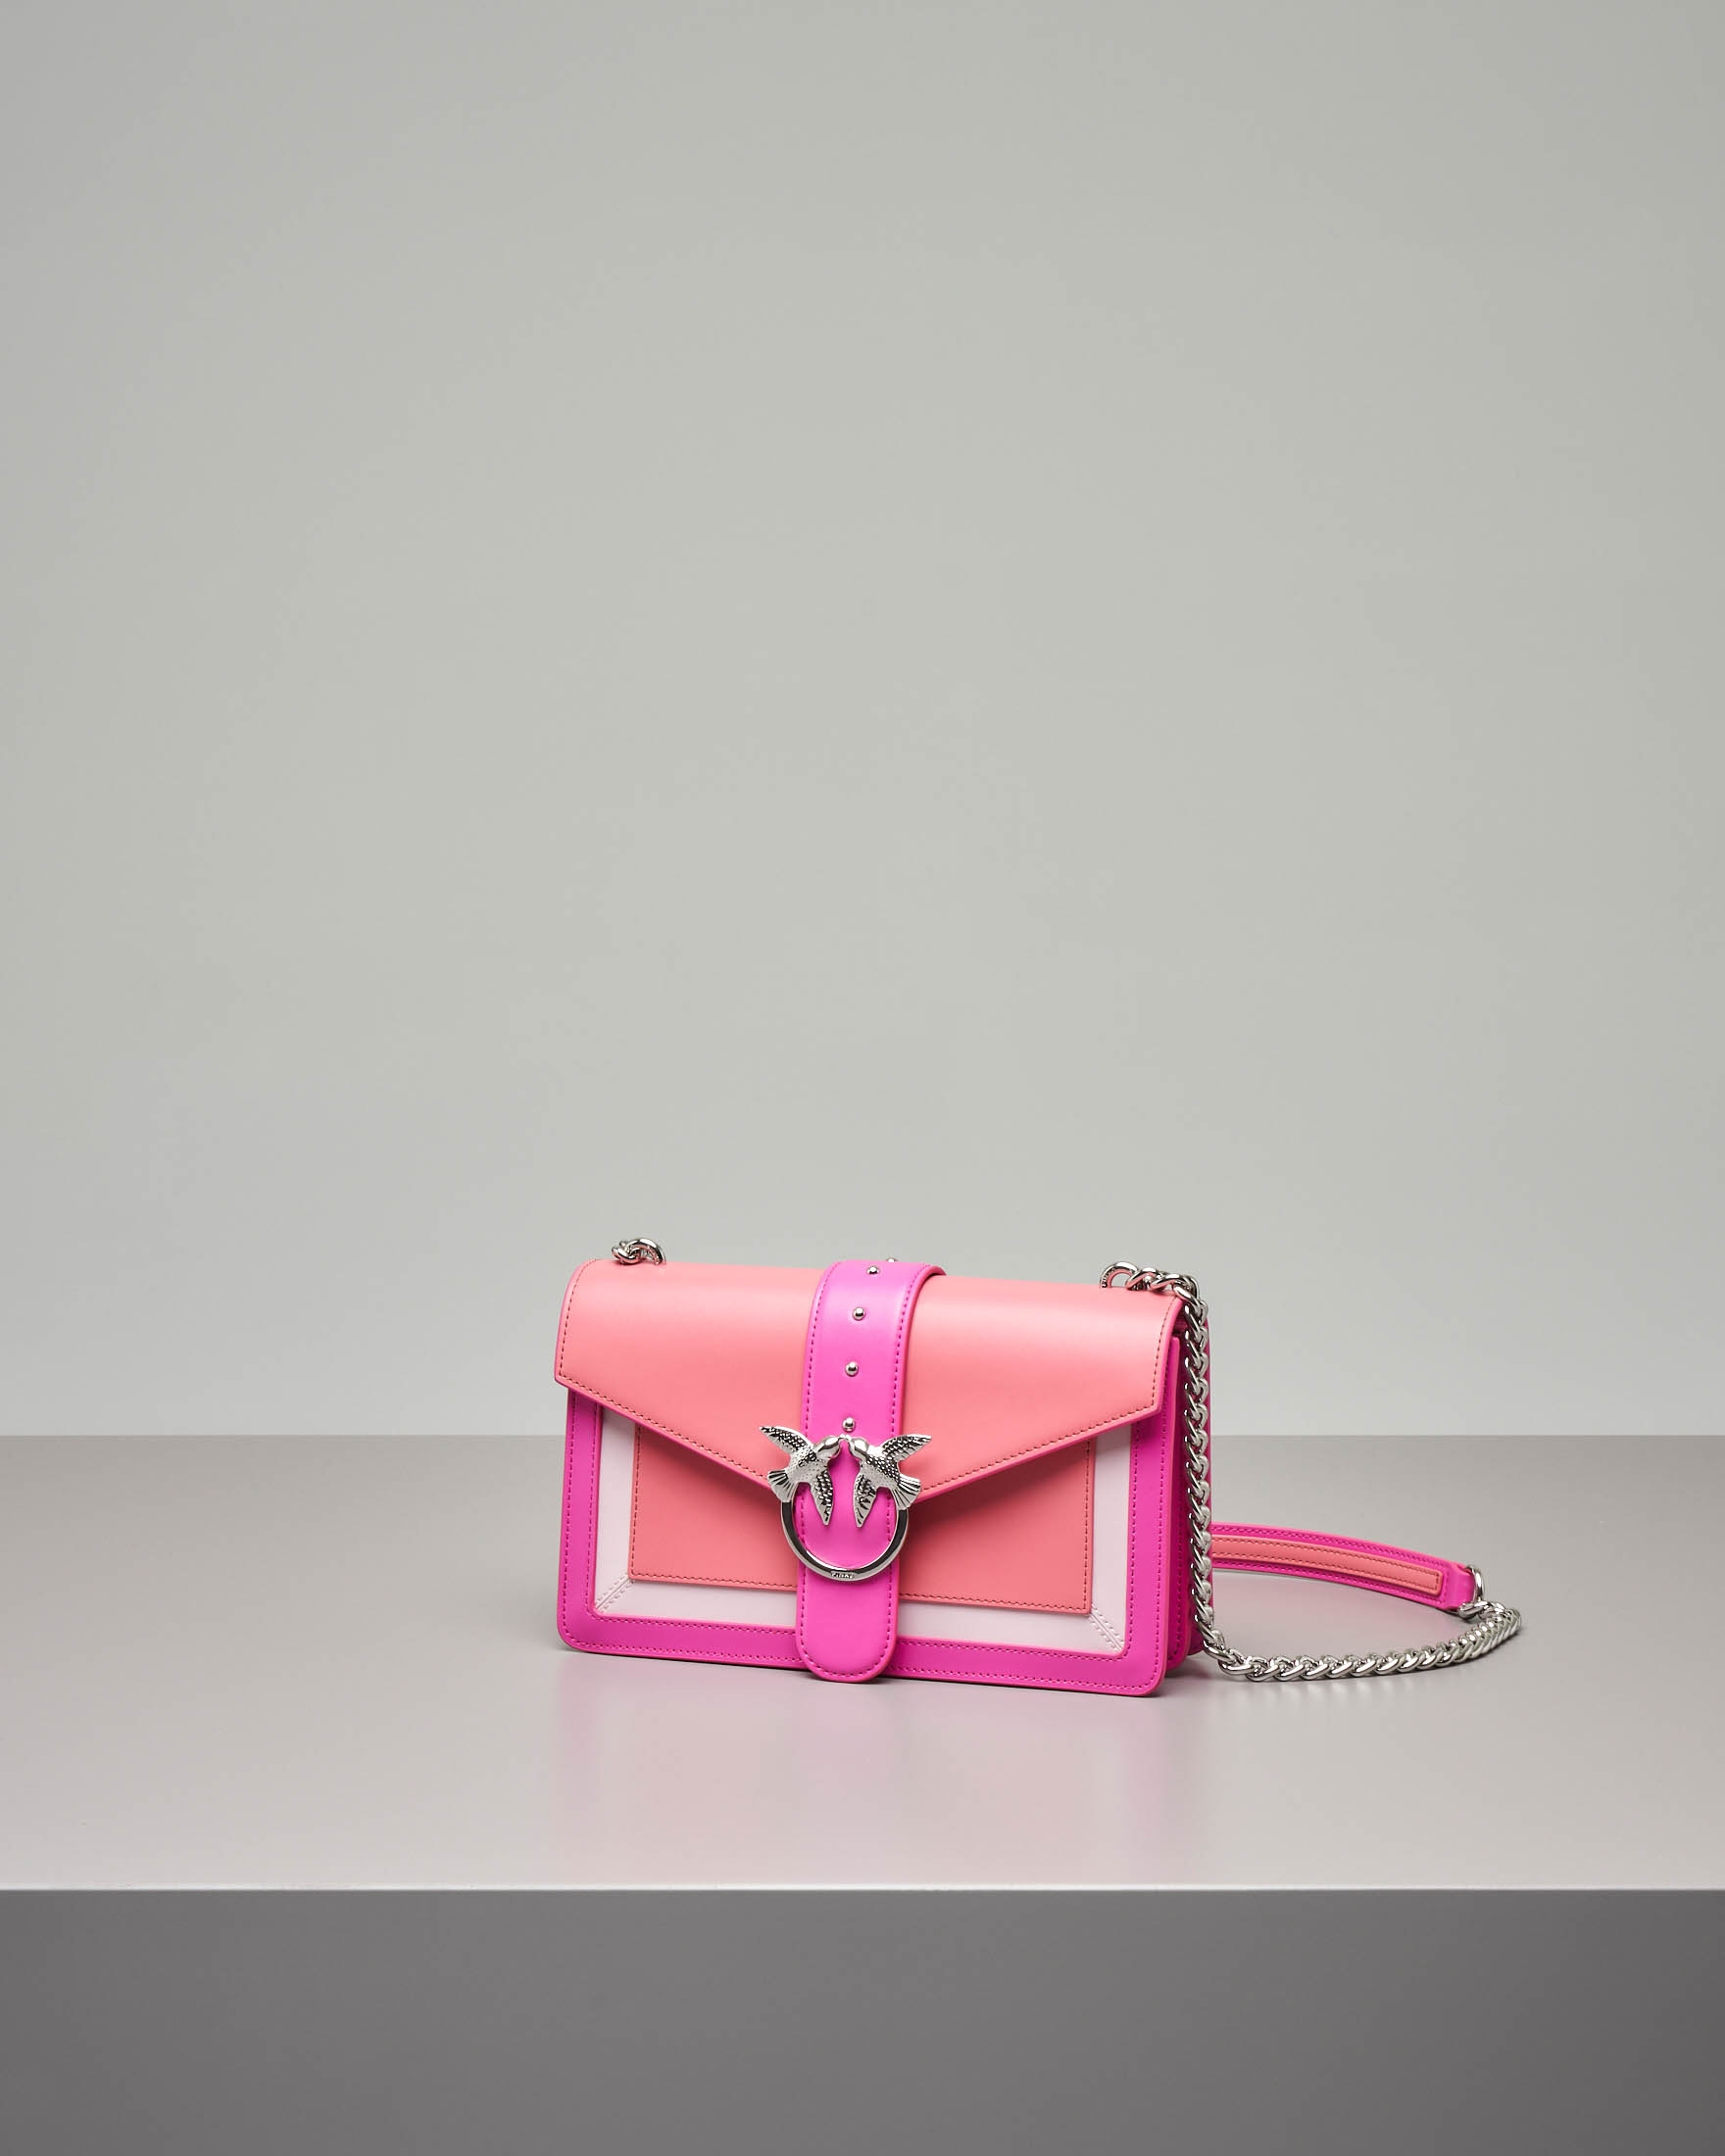 Love Evolution Bag in pelle fucsia con inserti bianchi e corallo